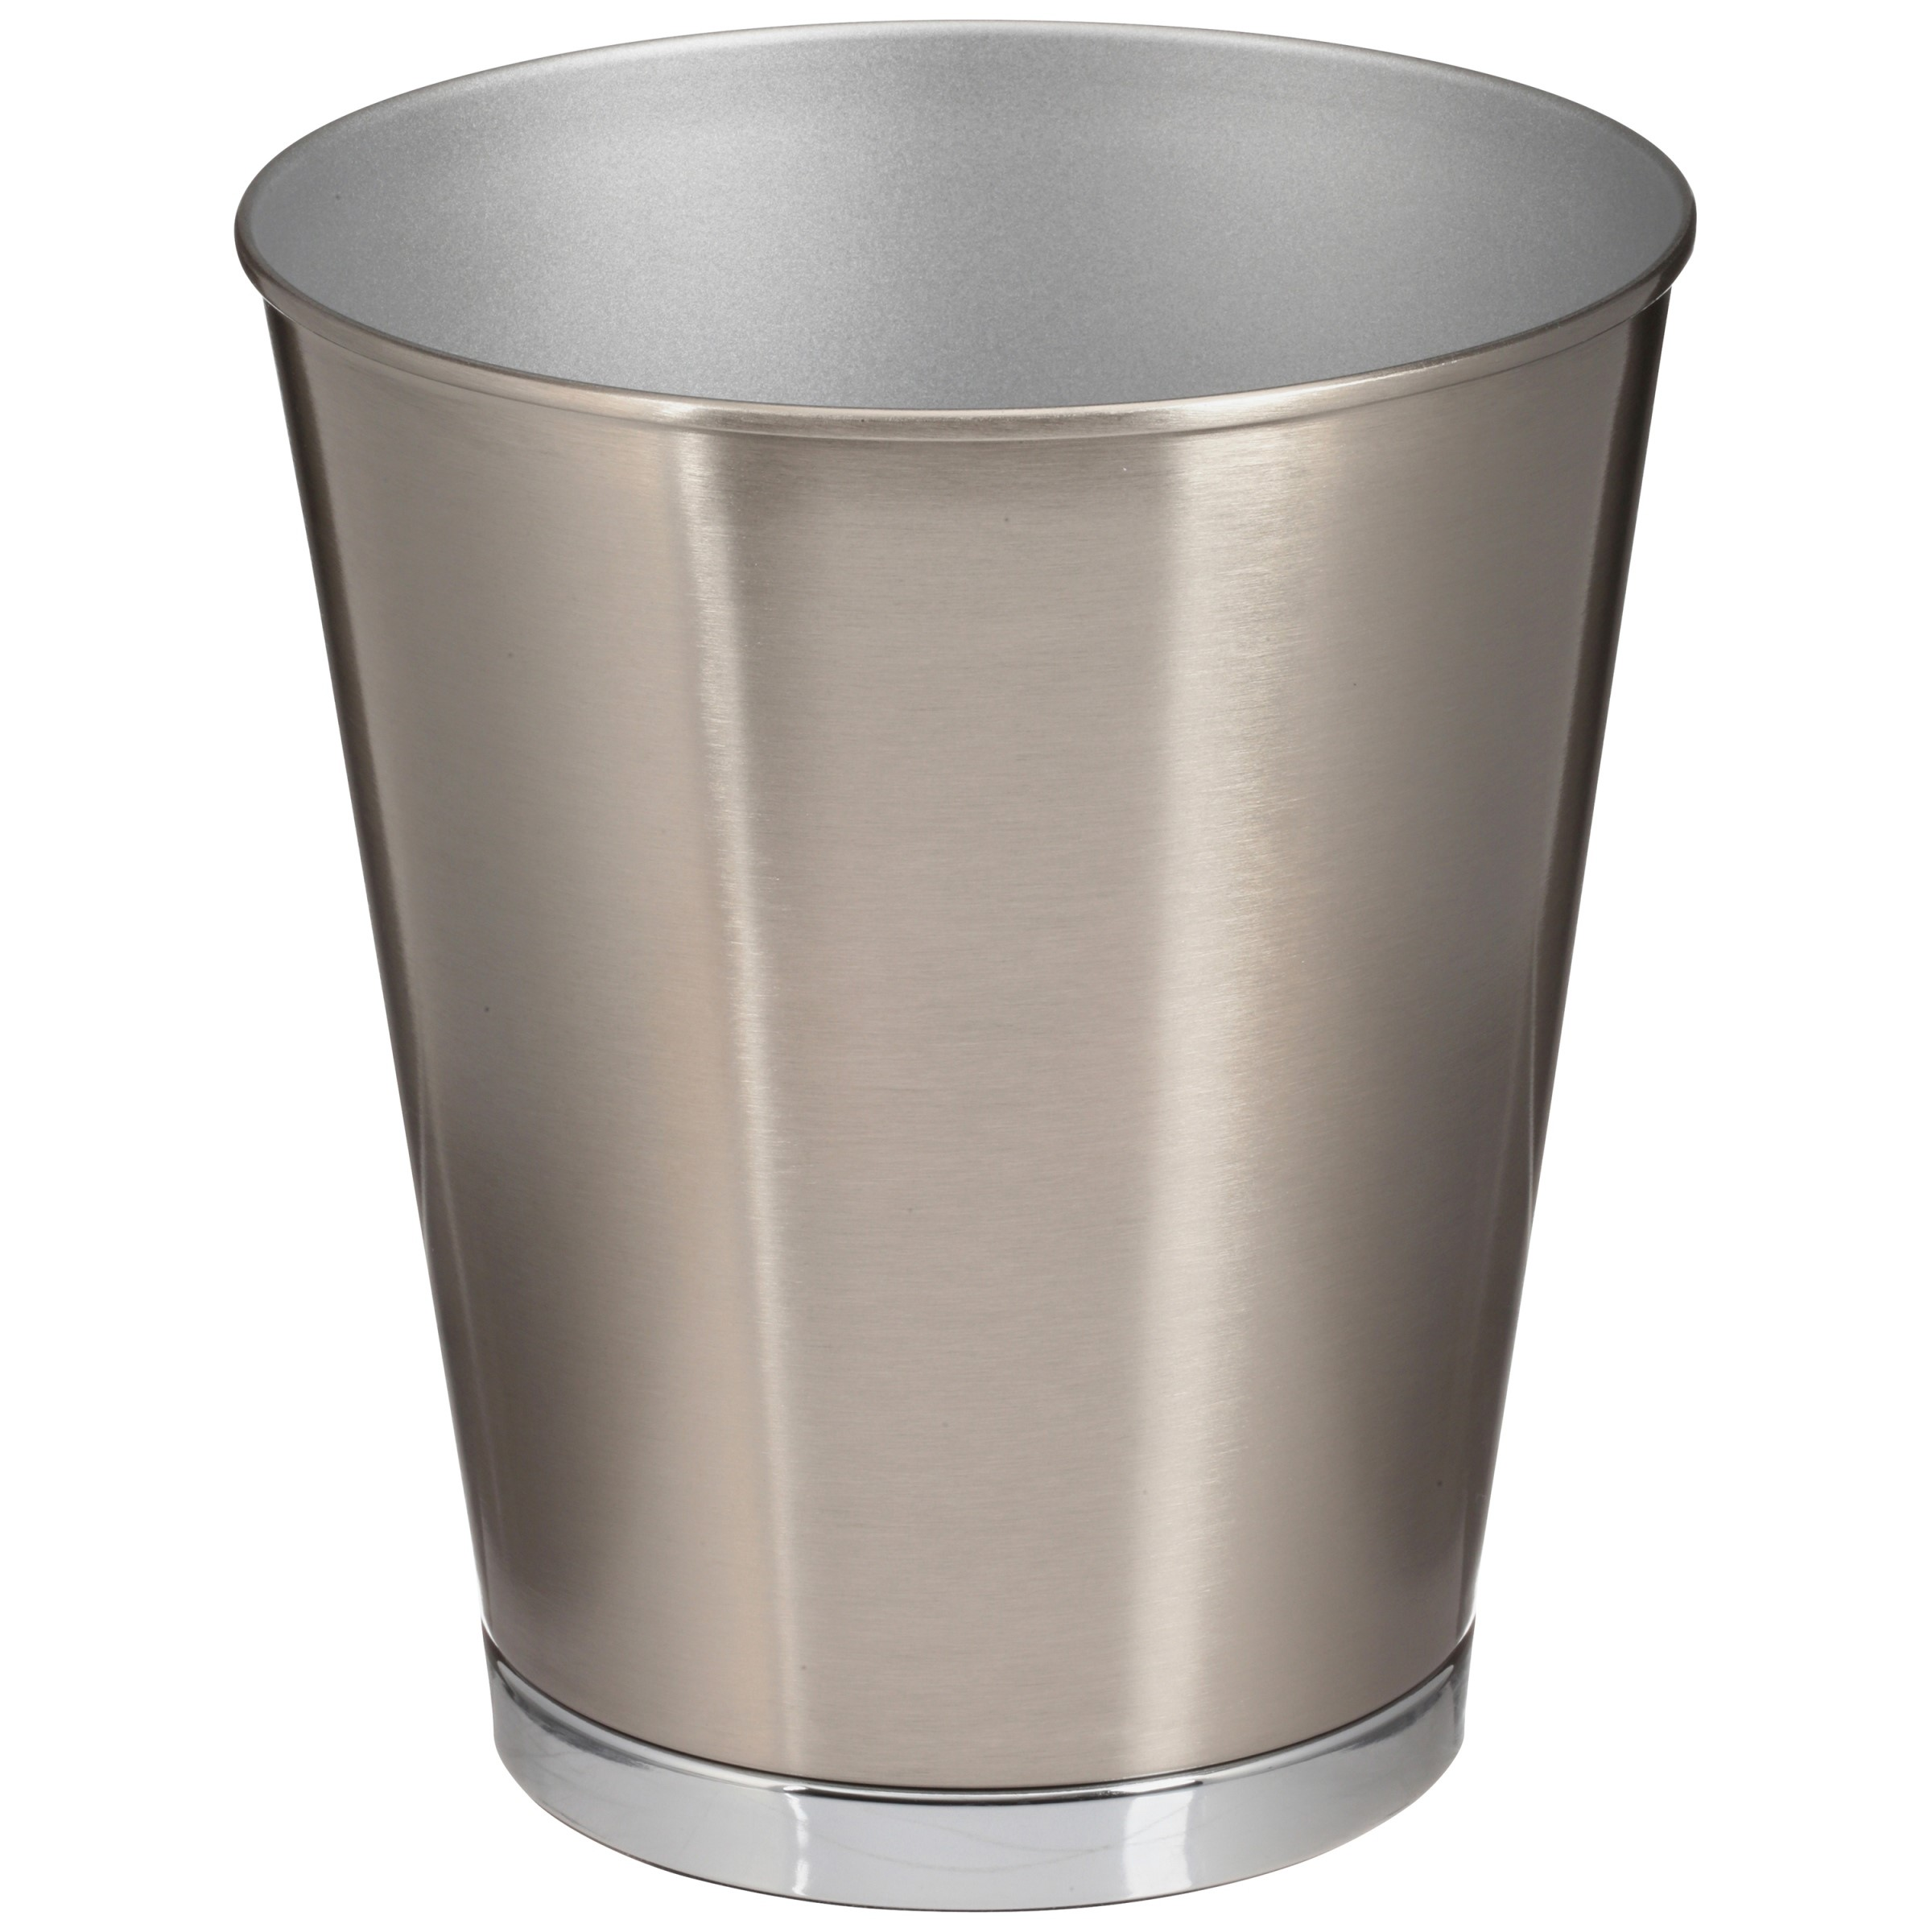 Better Homes & Gardens Silver Metal Waste Bin